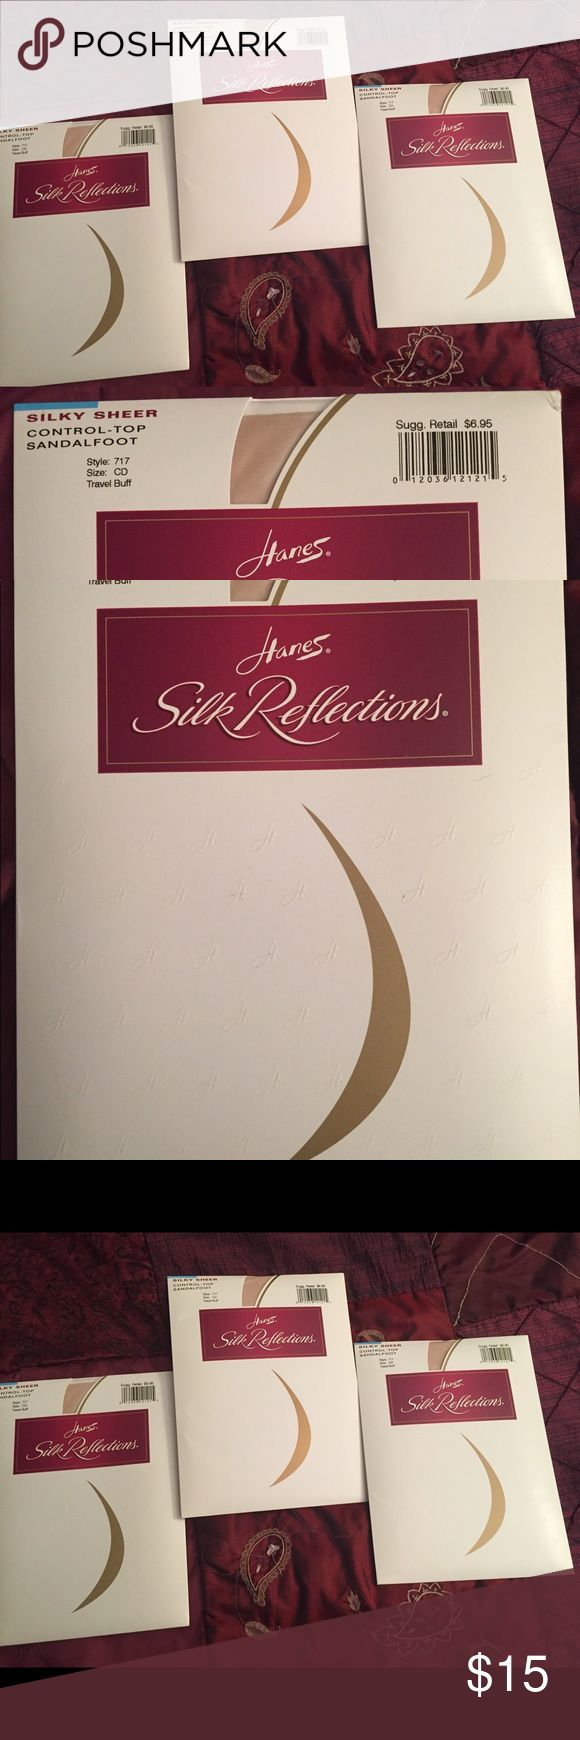 Hanes Silk Reflections Control Top Sandalfoot LOT 3 pairs of new, never opened Control Top Sandalfoot pantyhose. Silky Sheer Color: Travel Buff Size CD Chart is pictured Hanes Intimates & Sleepwear